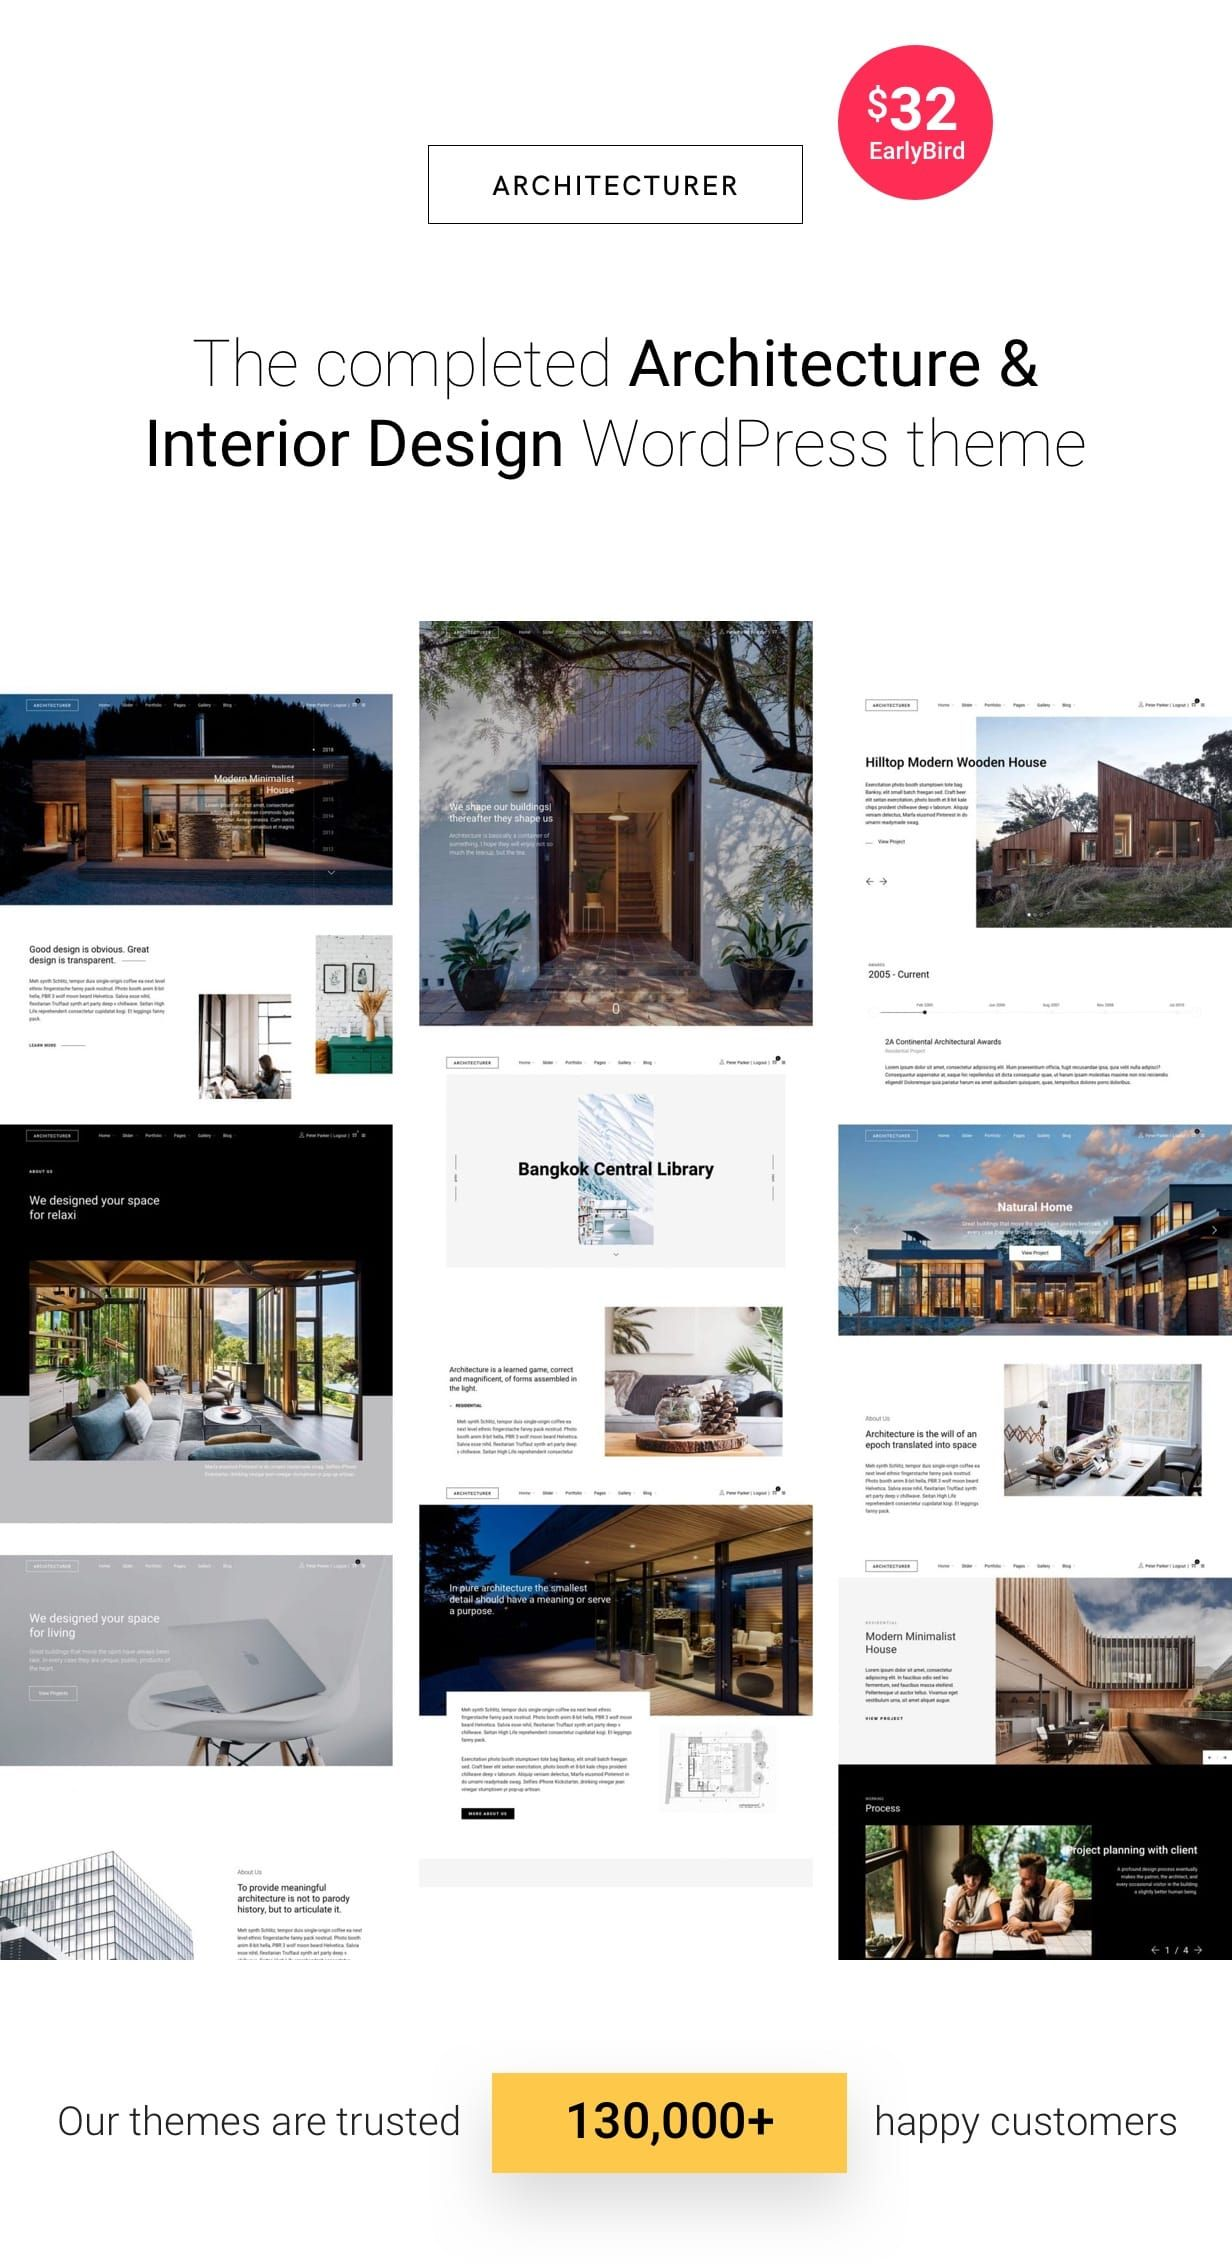 Architecturer Interior Design & Architecture WordPress